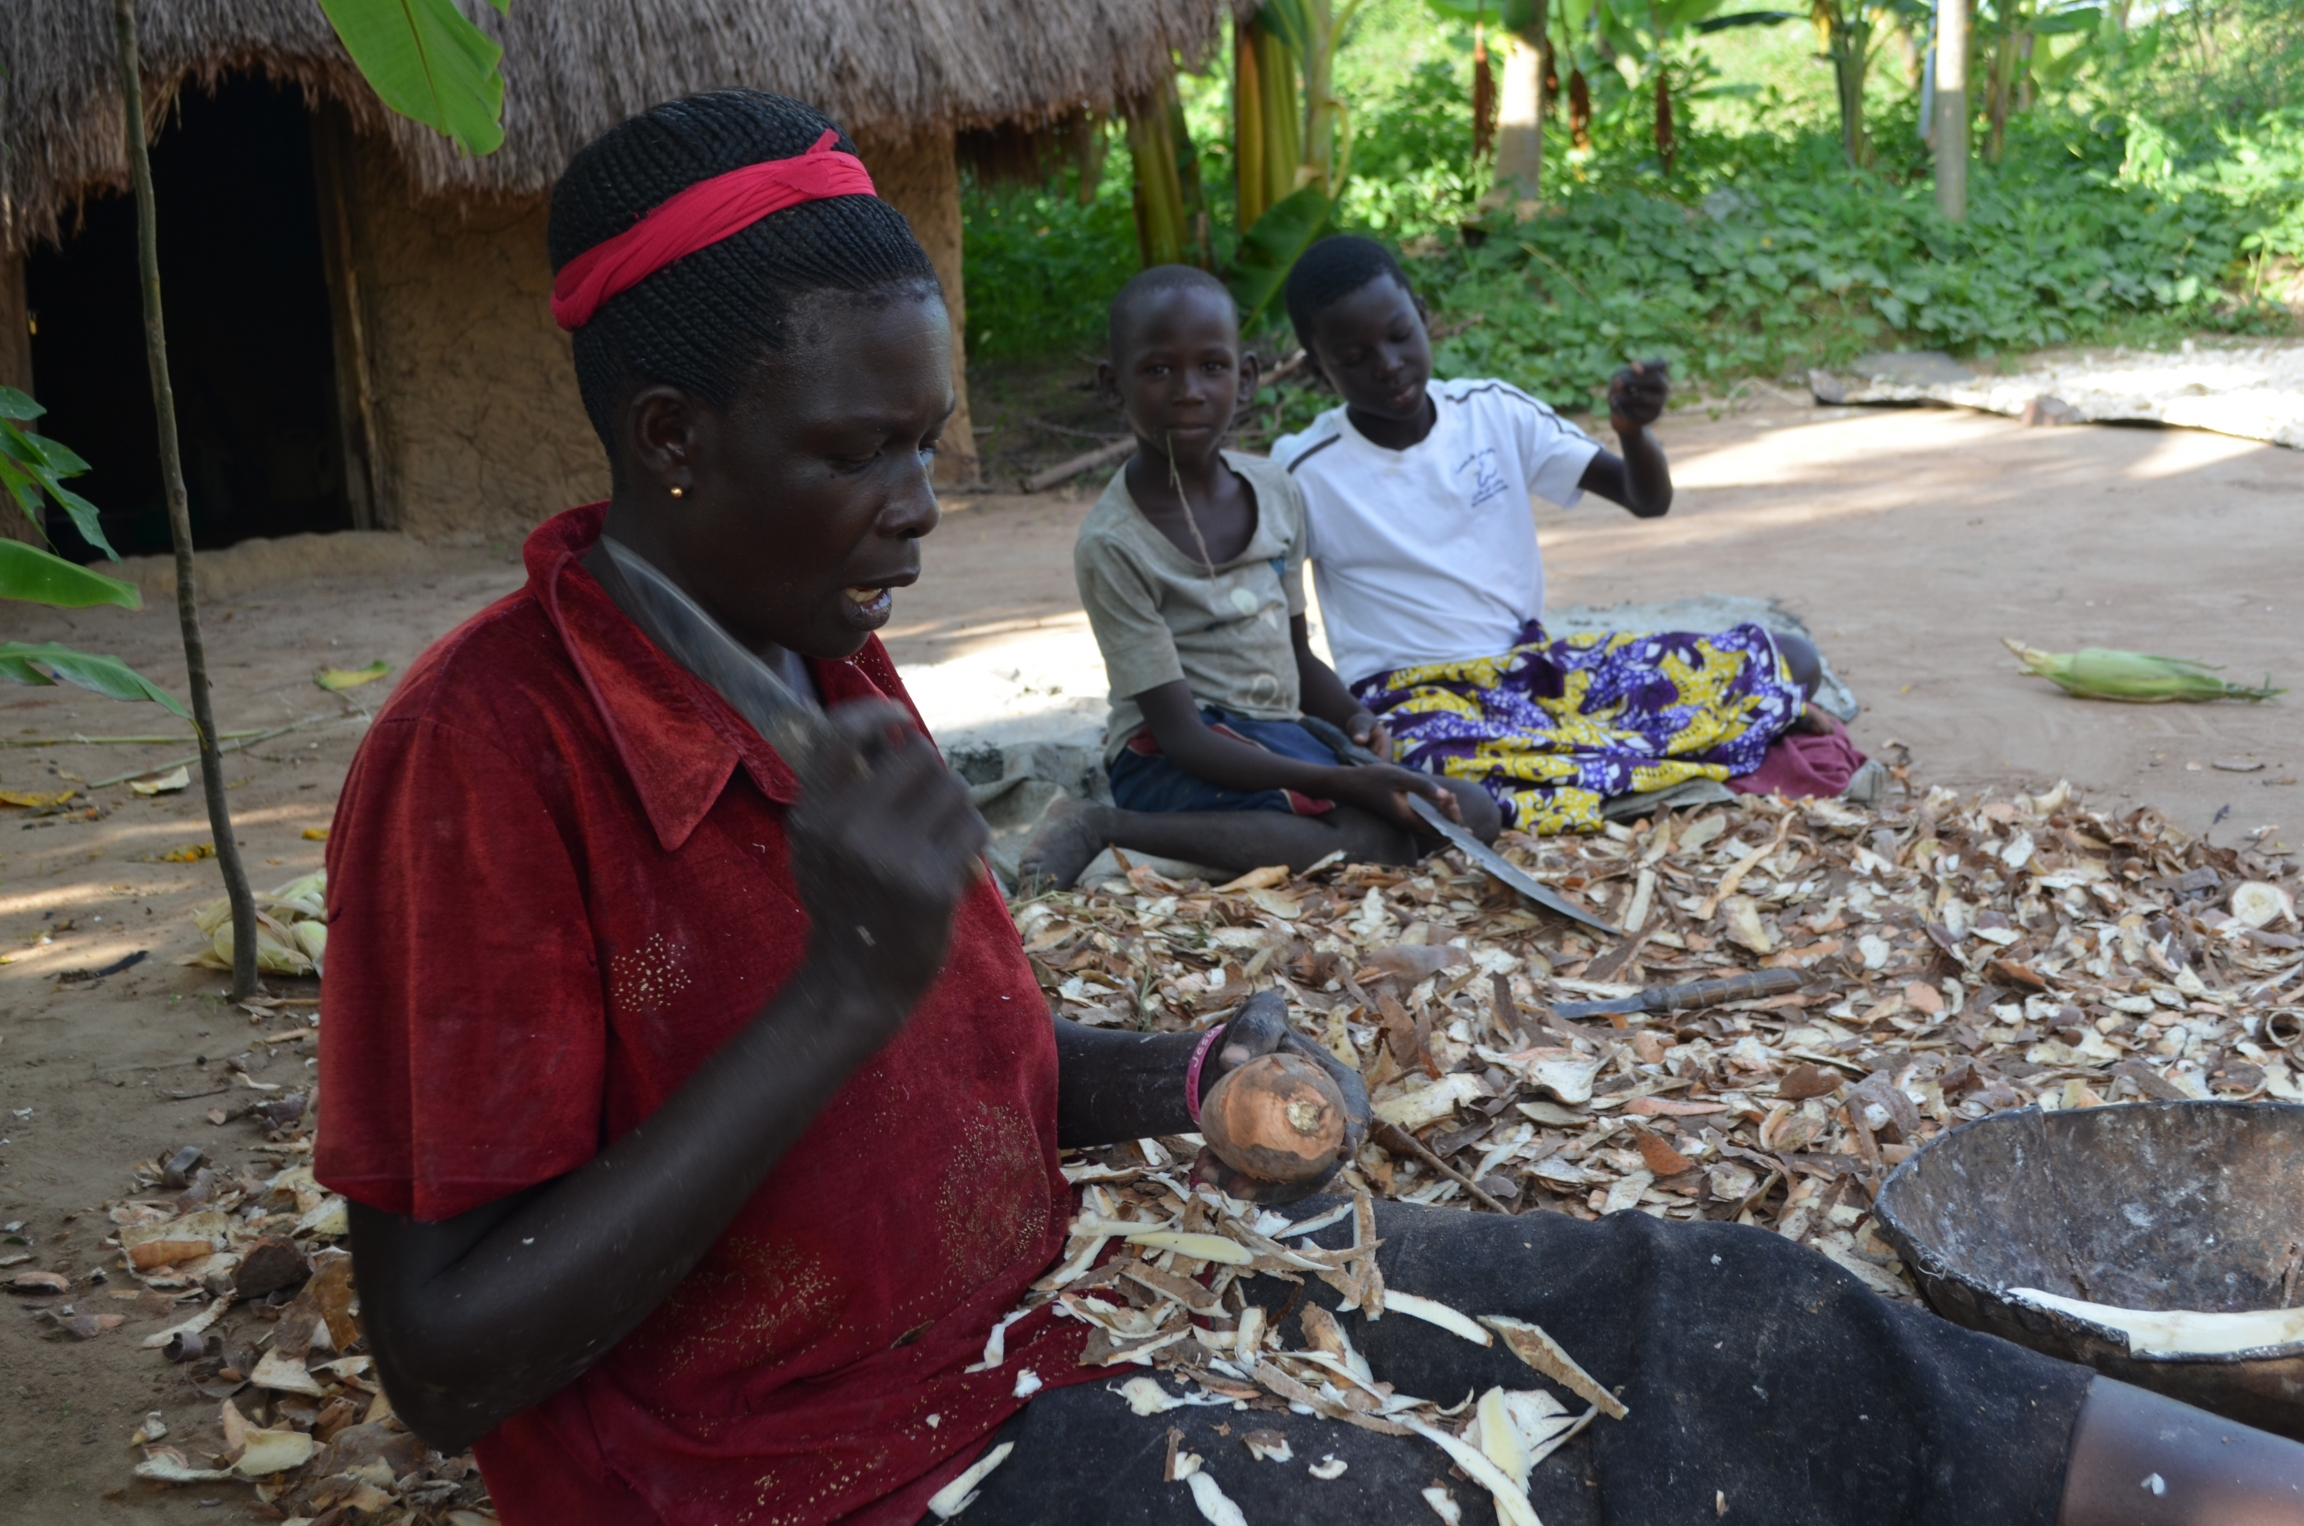 A woman wears a red head band and slices cassava root while sitting on the ground with two children nearby.